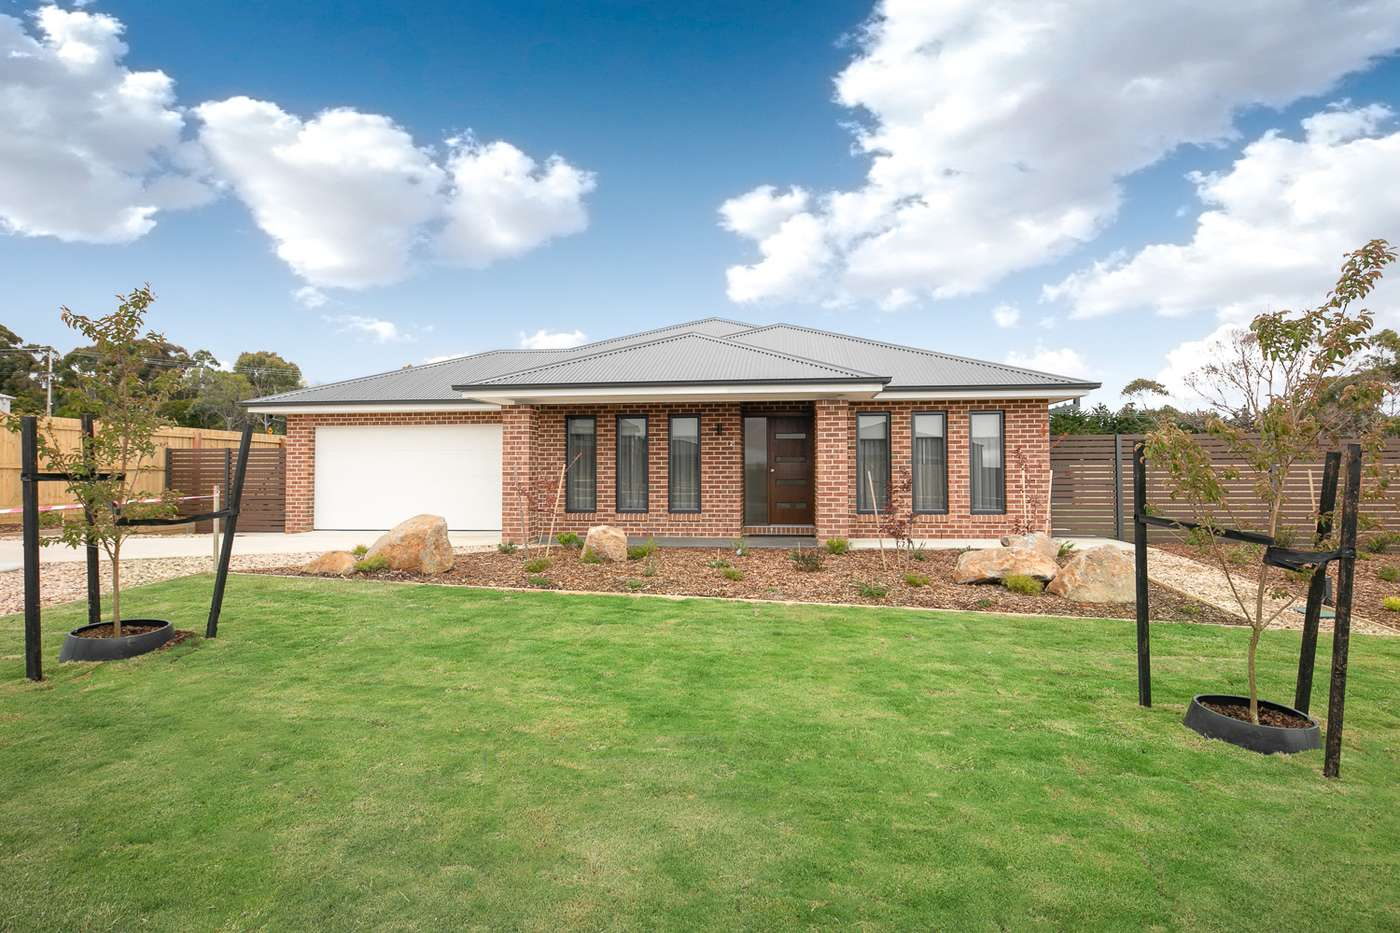 Main view of Homely house listing, 21 Riceflower Court, Gisborne, VIC 3437